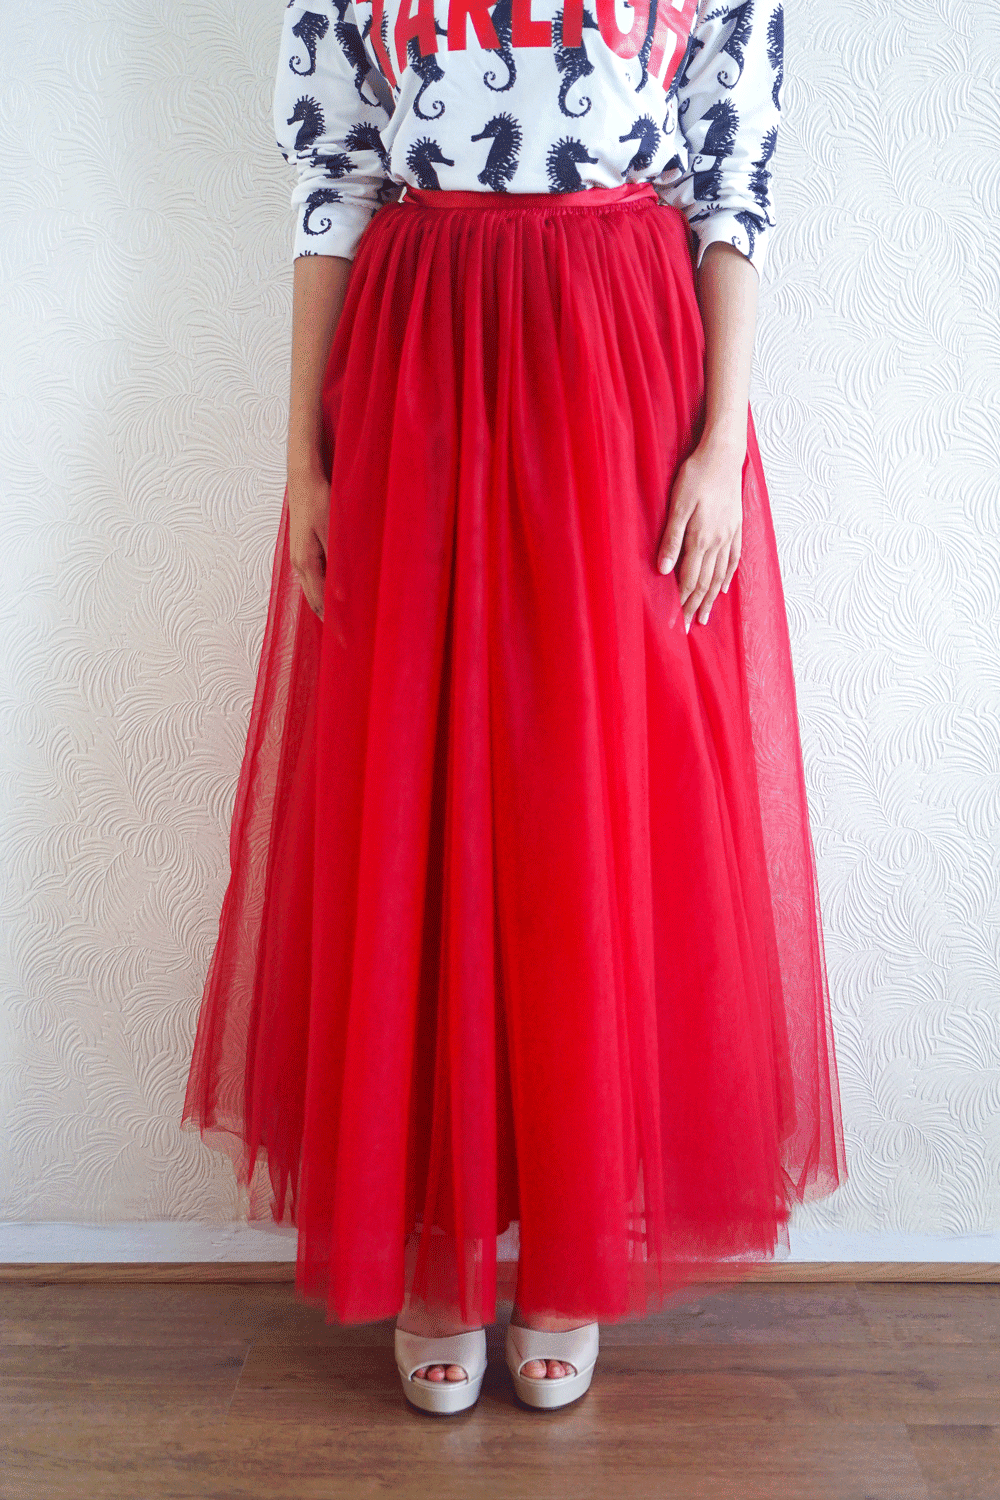 Everyday Red Tulle Skirt